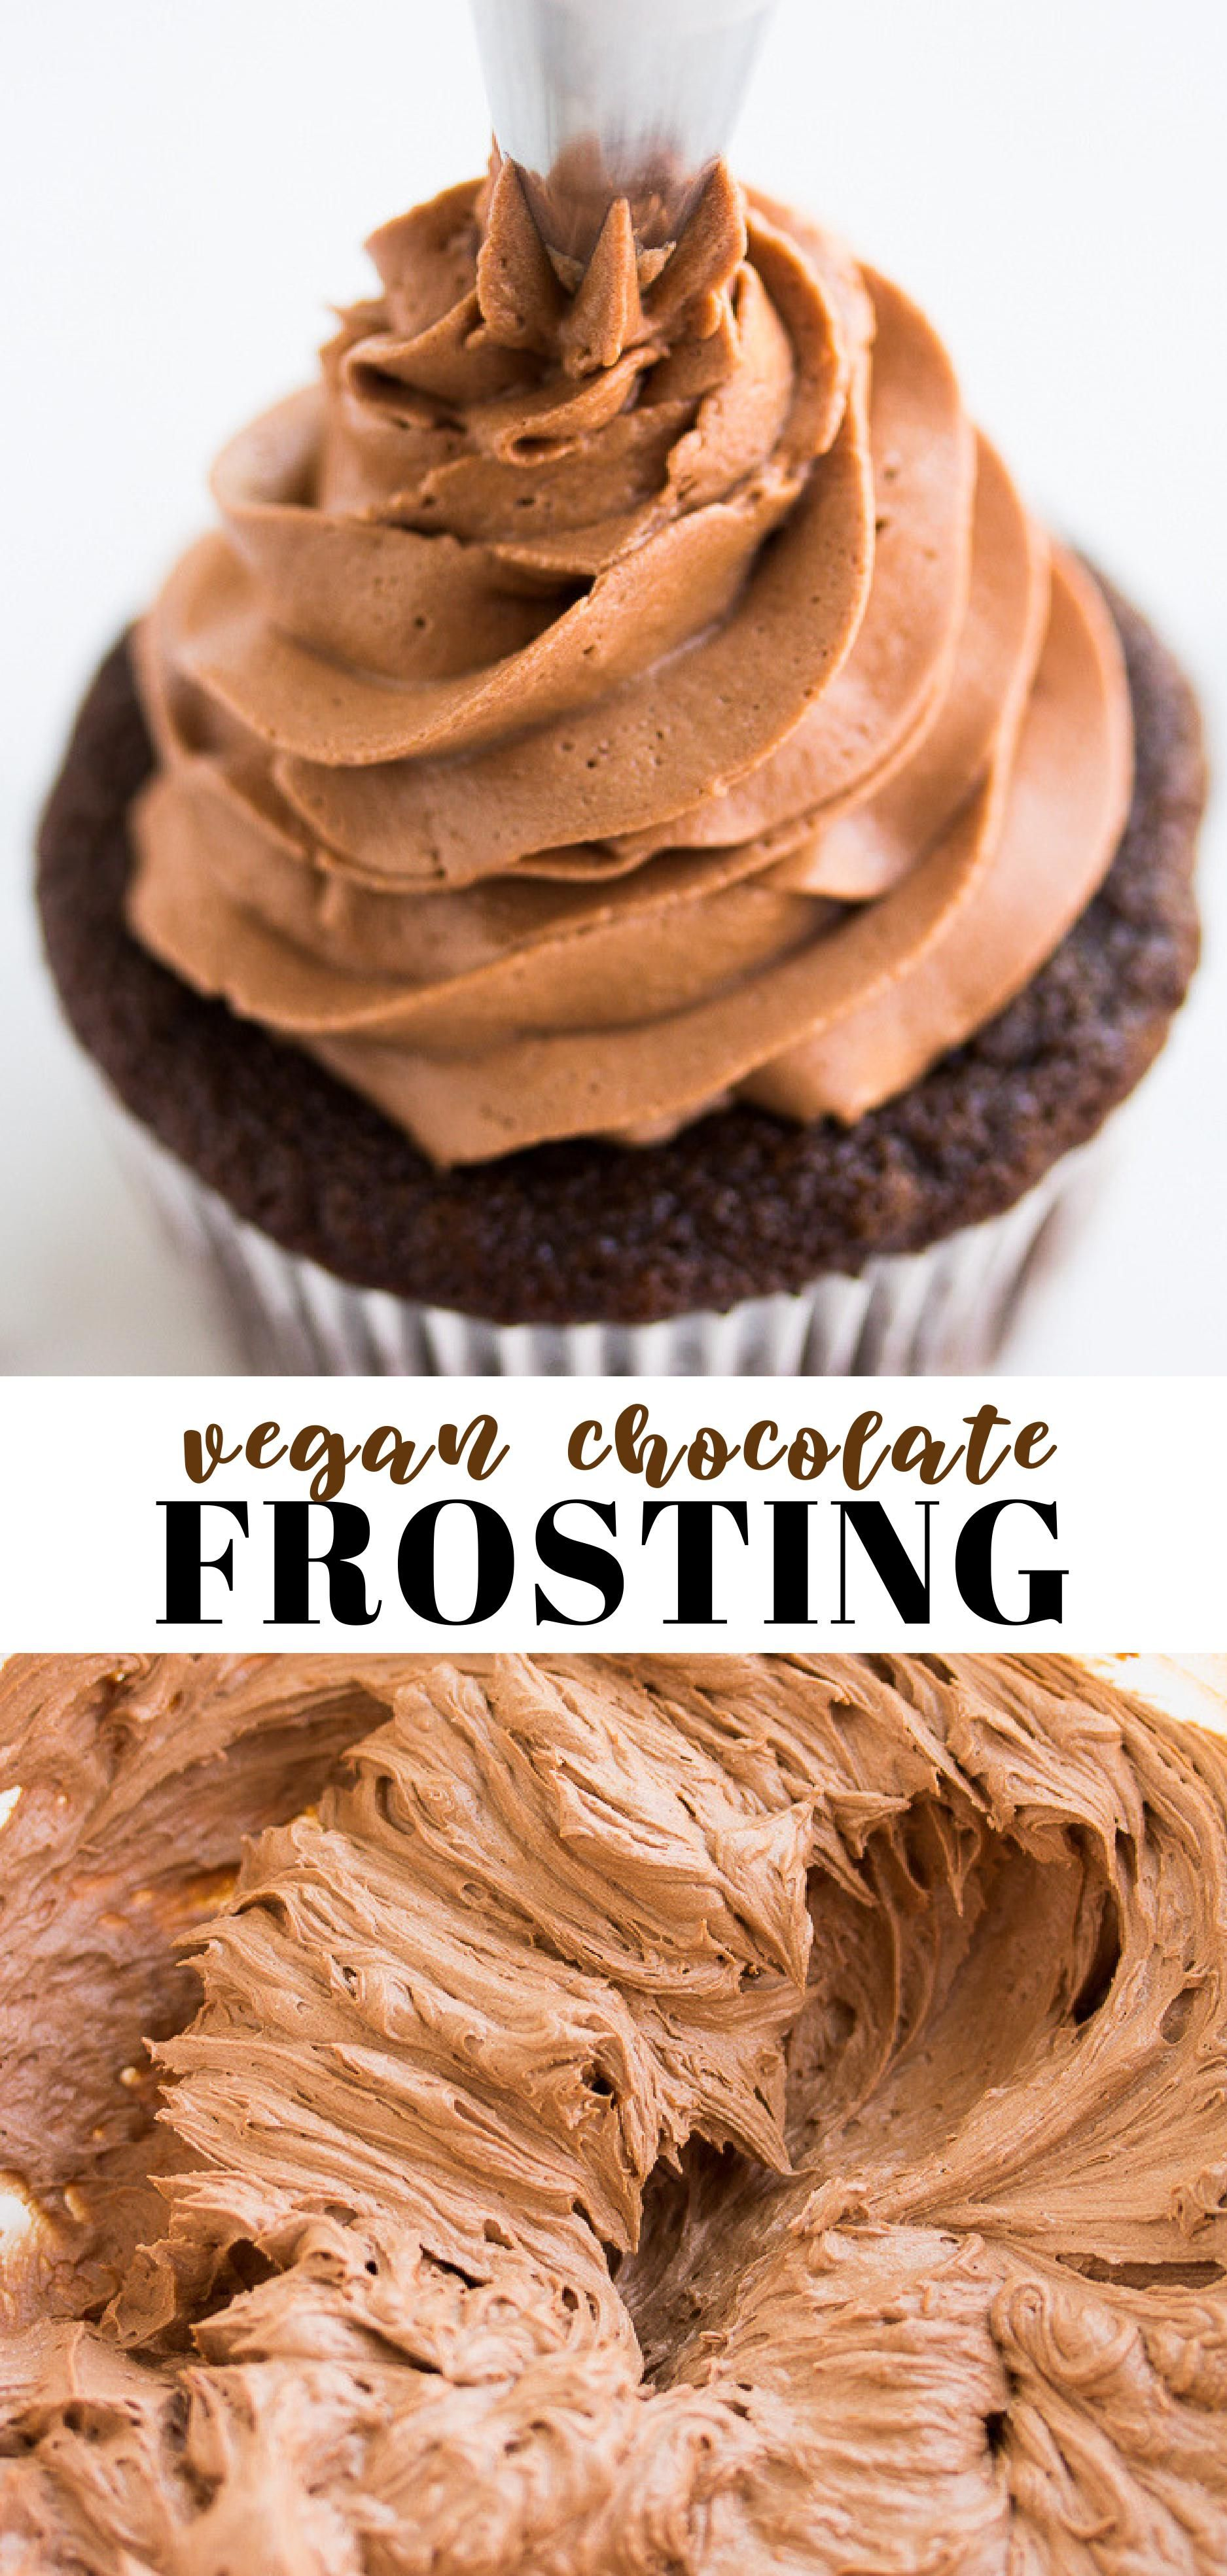 No dairy is needed for this easy Vegan Chocolate Buttercream Frosting! Perfect for cakes, cupcakes and more. #vegan #cake #frosting #dairyfree #icingfrosting